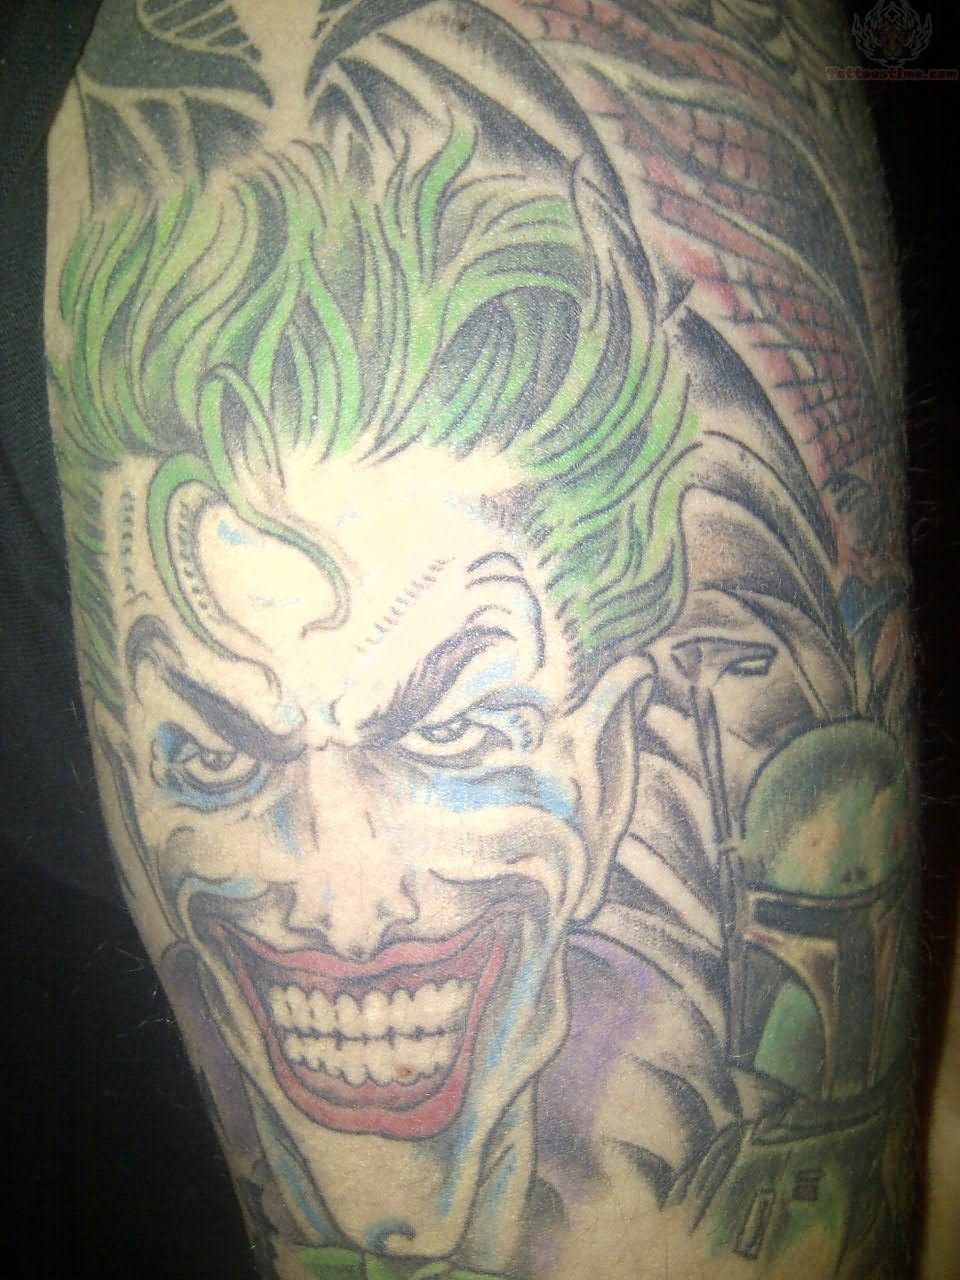 Color Joker Tattoo On Half Sleeve